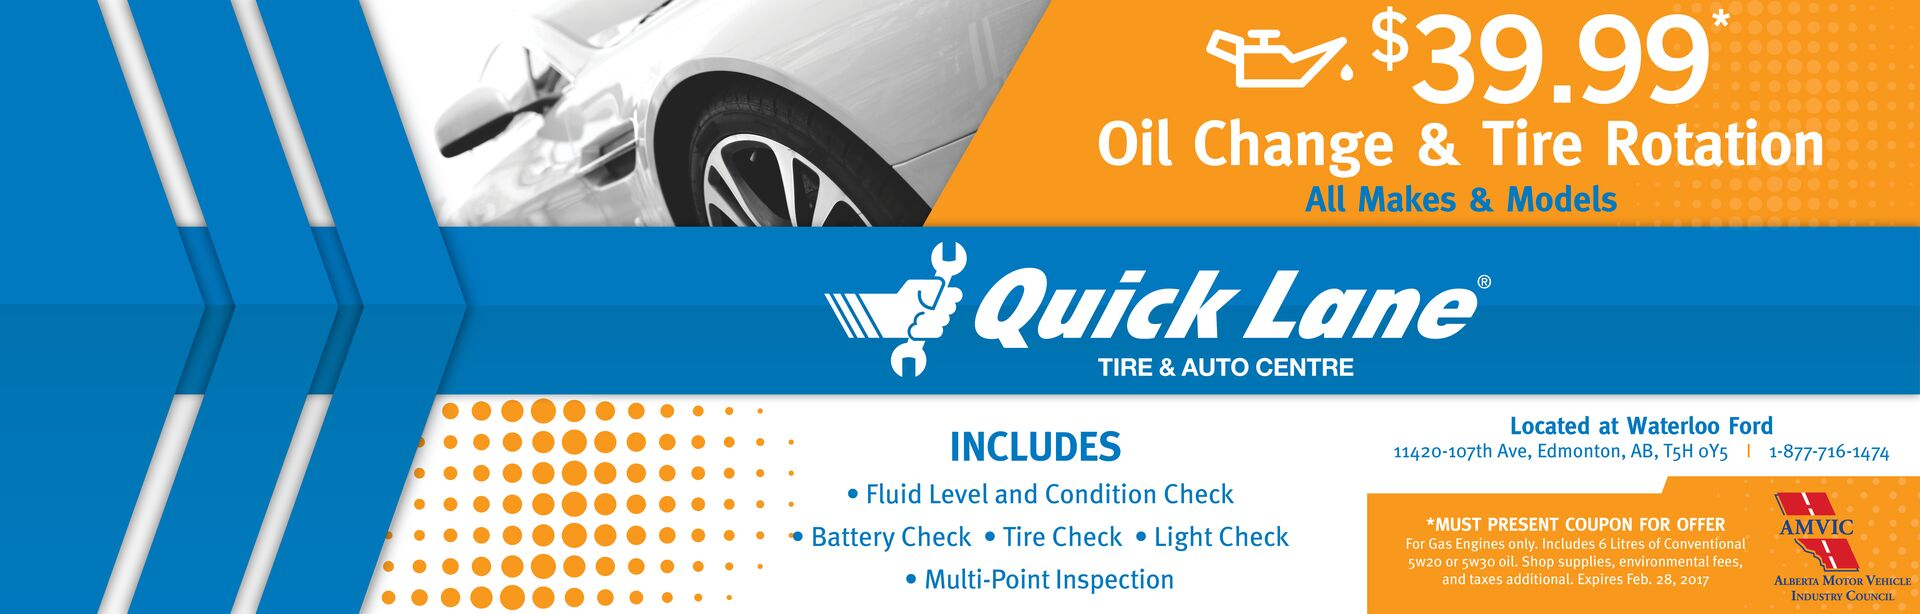 $39.99 Oil Change & Tire Rotation